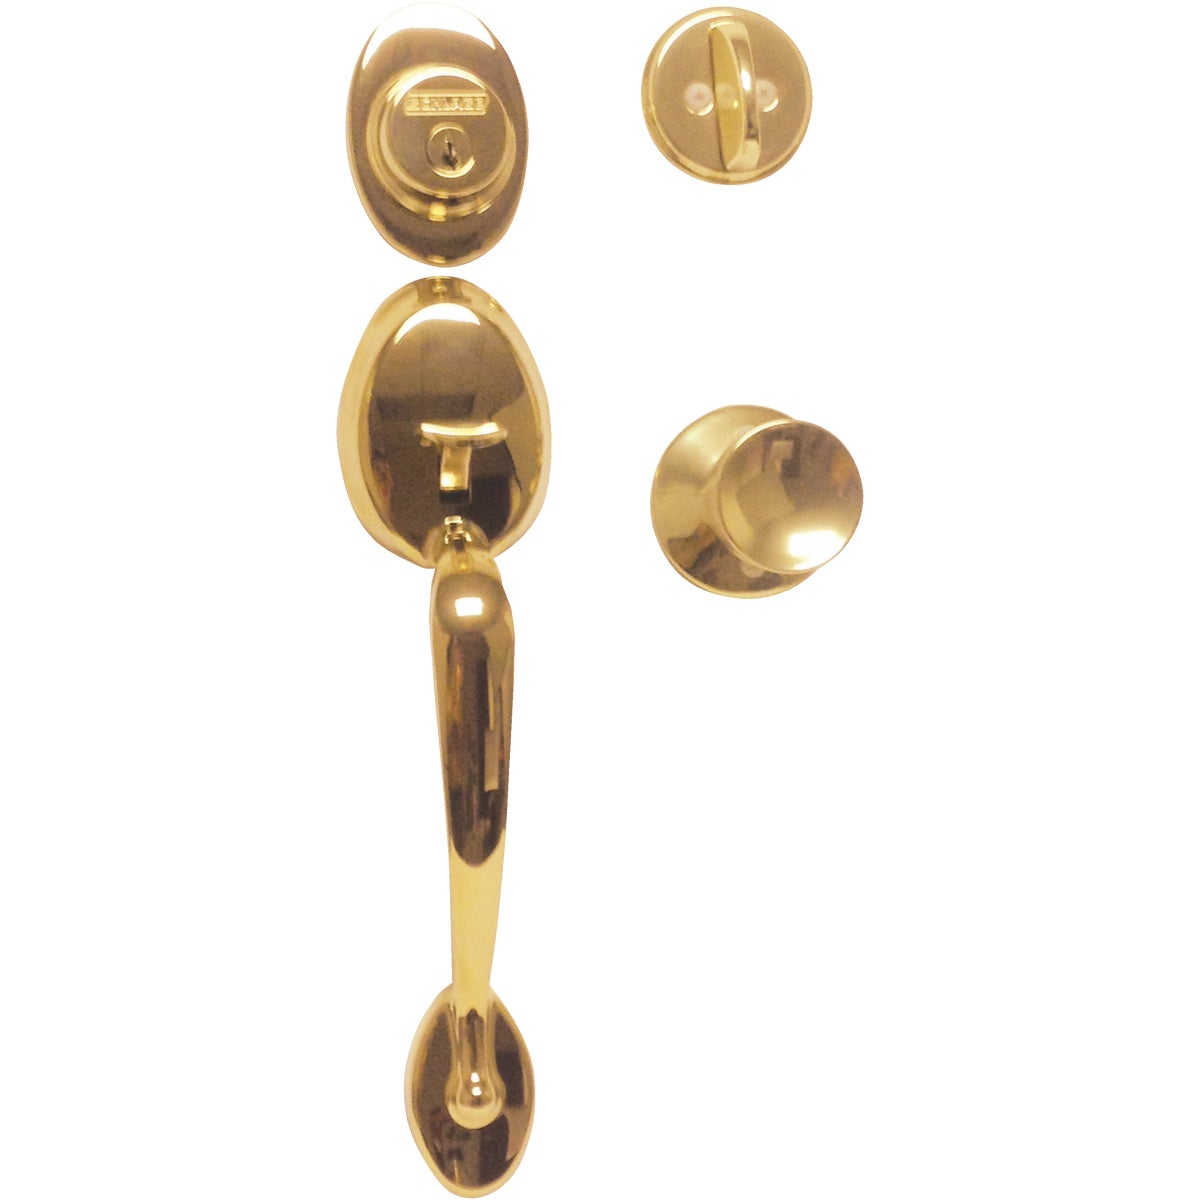 Item 248347, Visual pack. Exterior grip handle set with Bell interior knob with B-series single cylinder deadbolt for exterior doors.